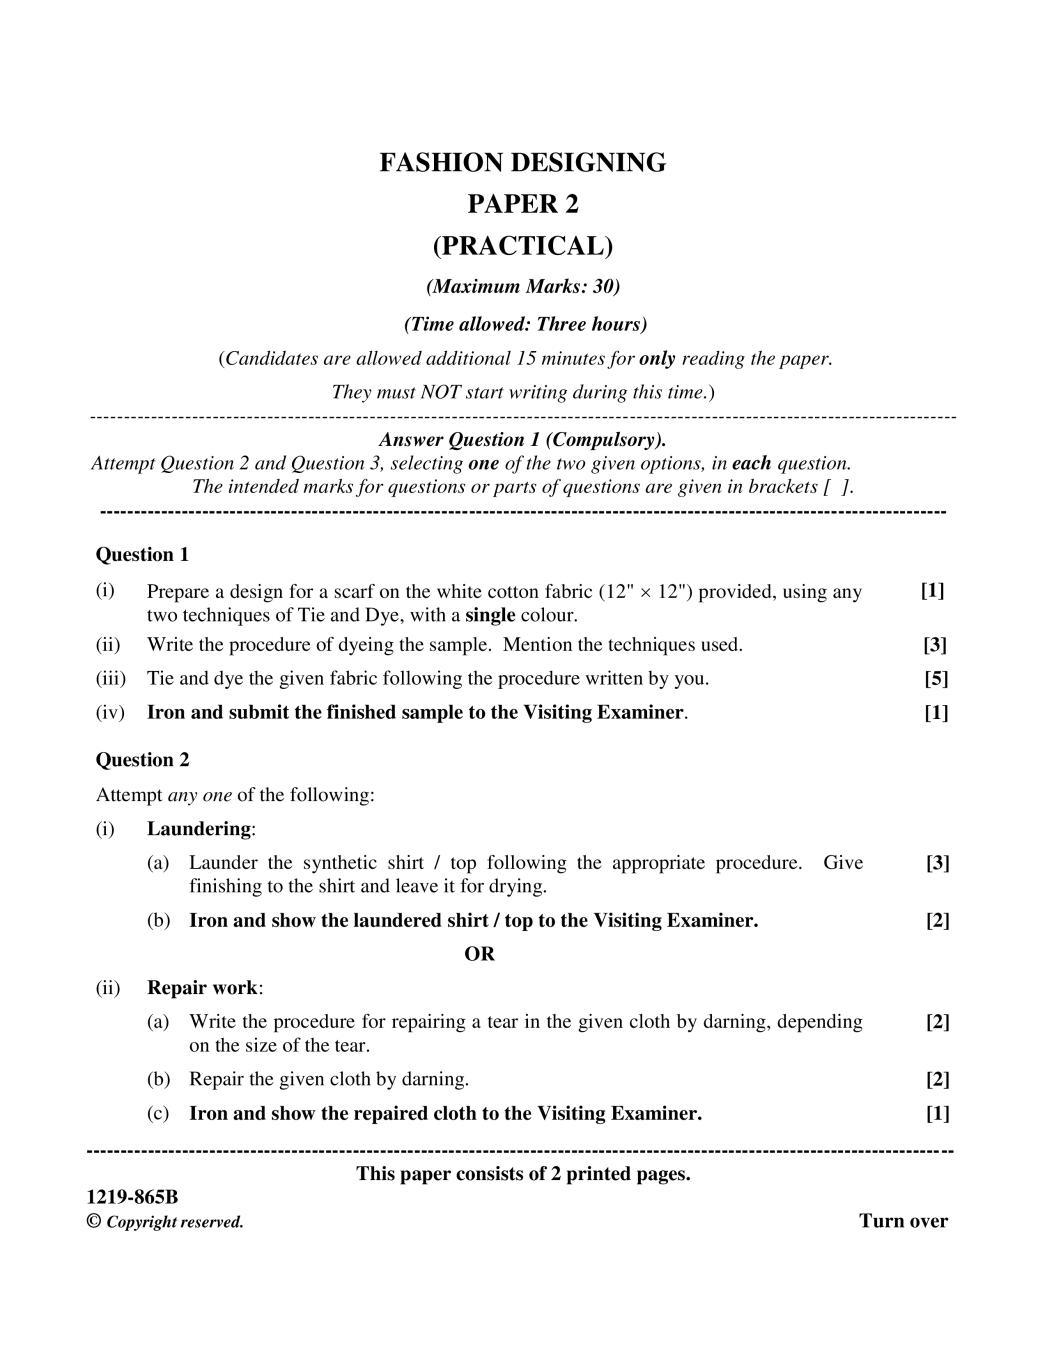 ISC Class 12 Question Paper 2019 for Fashion Design Paper 2 - Page 1